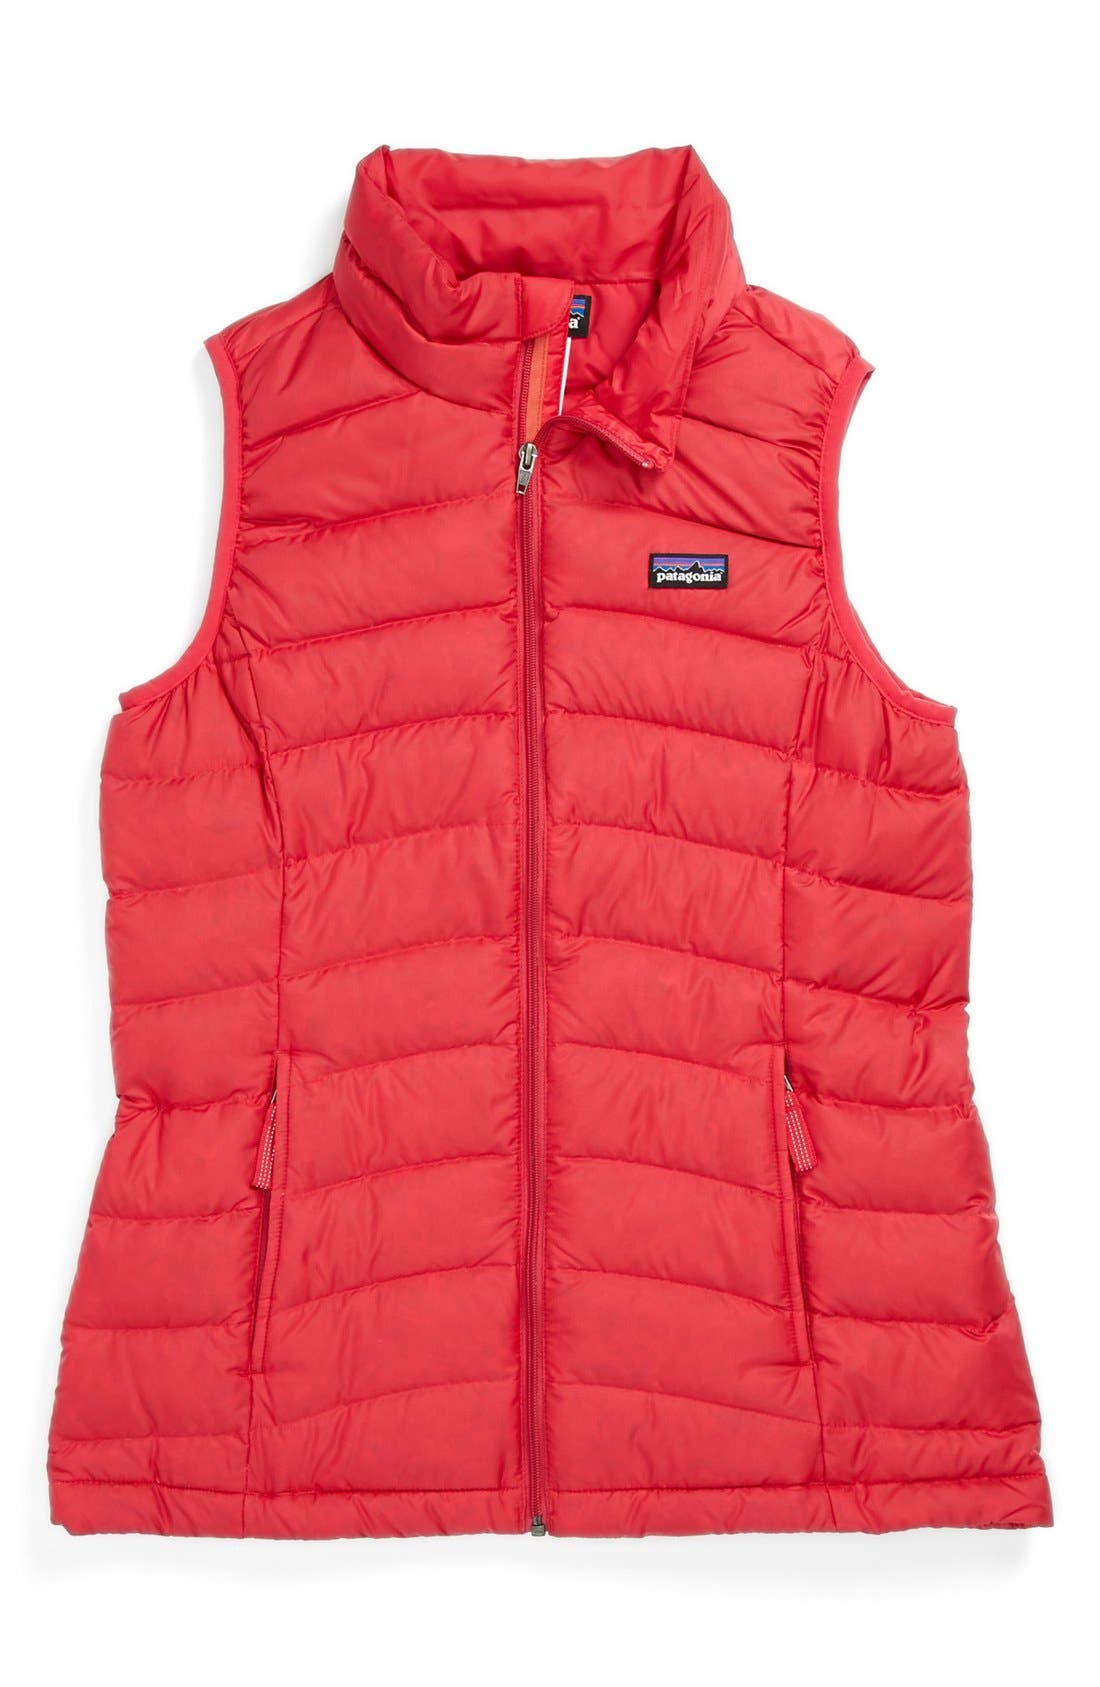 Alternate Image 1 Selected - Patagonia Down Vest (Little Girls & Big Girls)